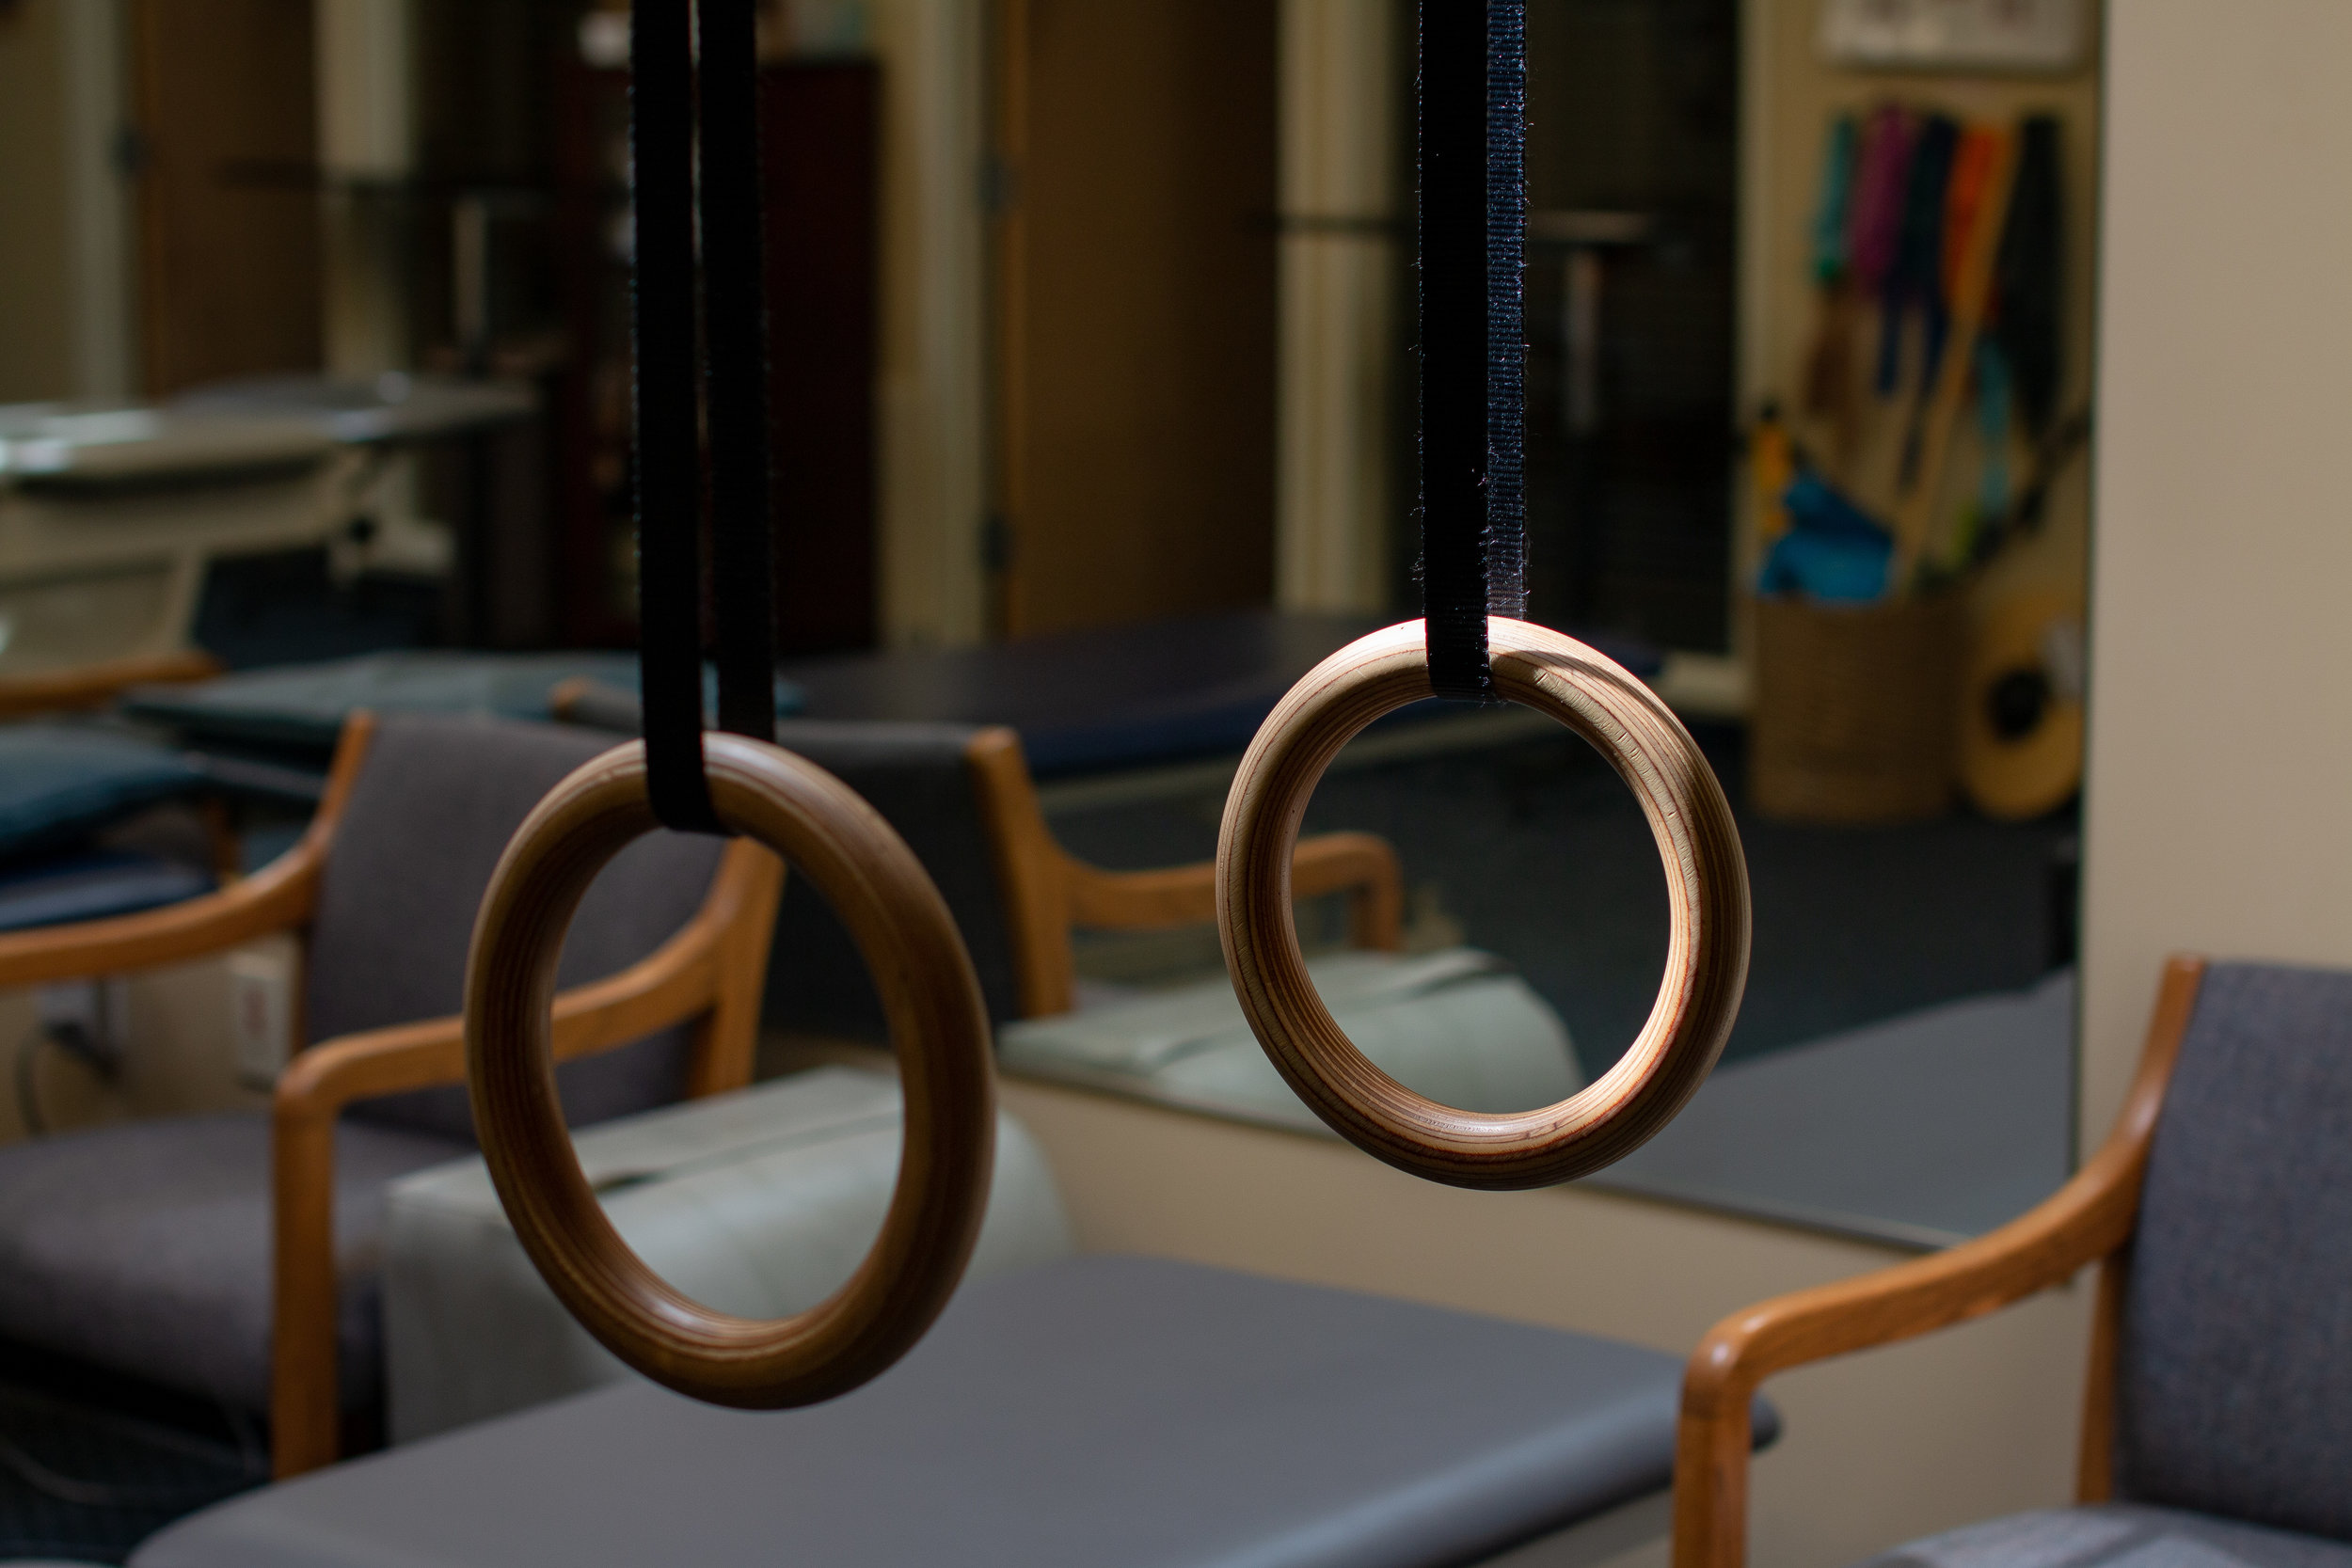 Wooden exercise rings